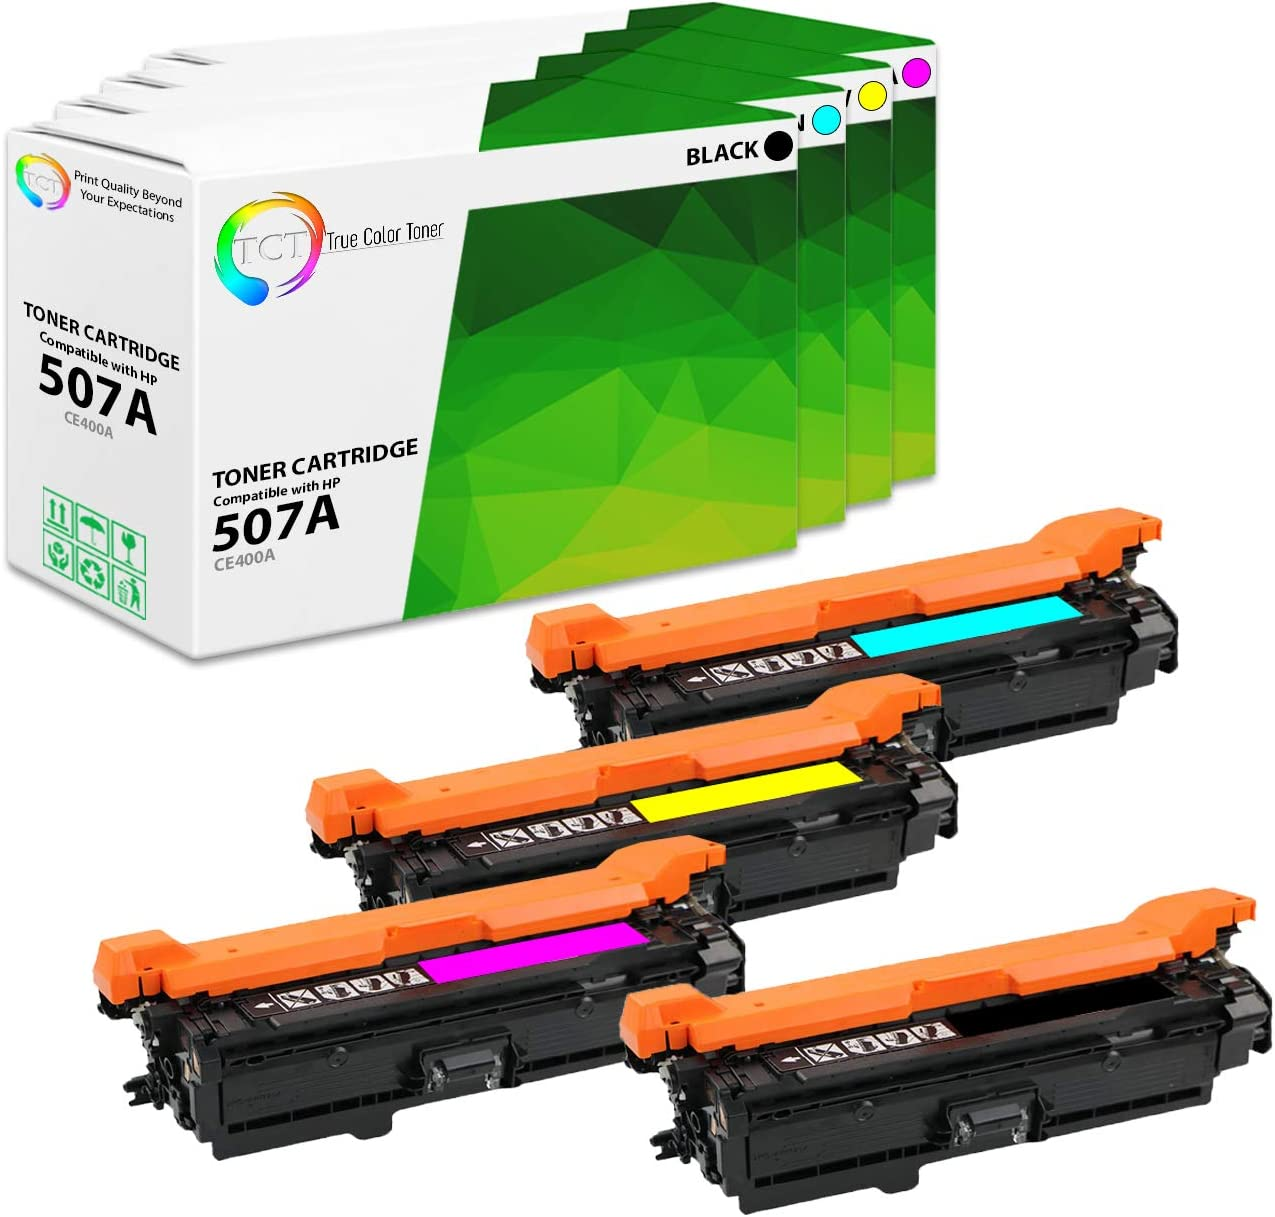 True Color Toner Compatible Replacement Toner Cartridge Replacement for HP CE400A( Black, Cyan, Yellow, Magenta , 4 pk )